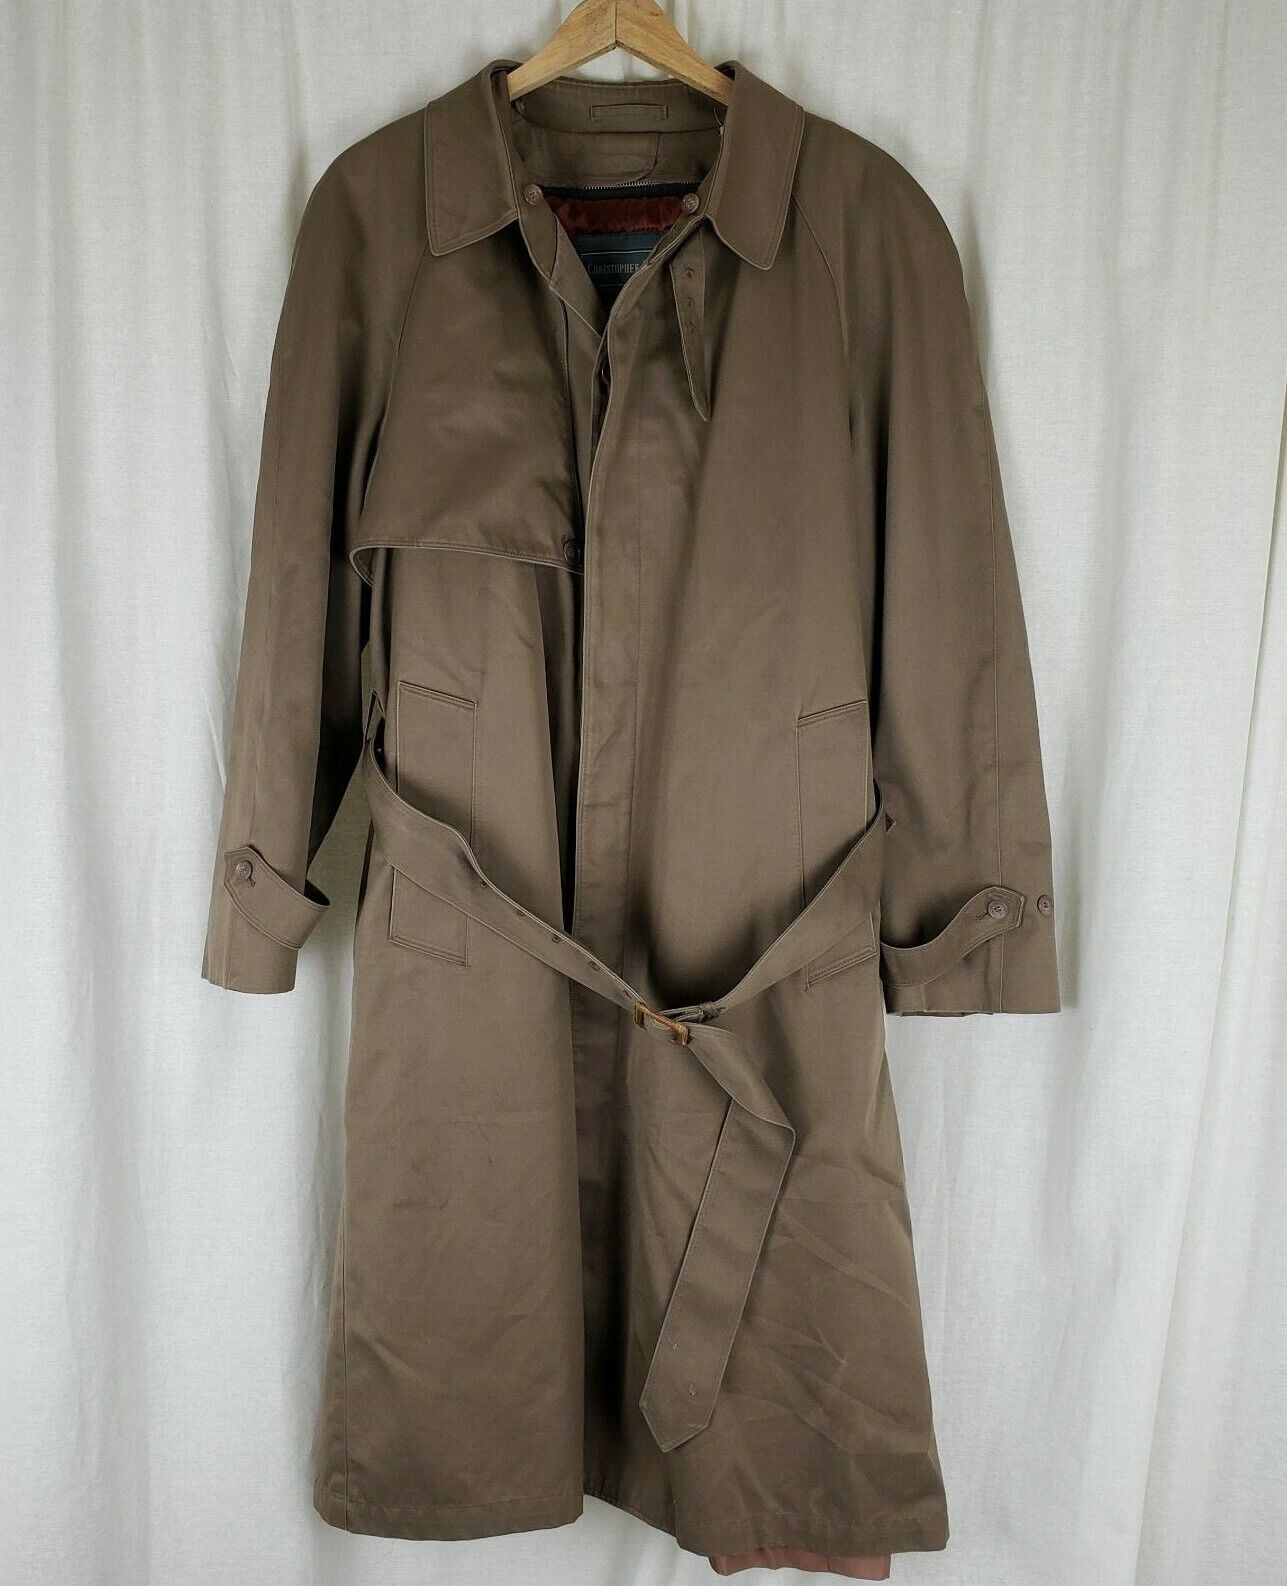 Vtg Christopher Hayes Belted Trench Coat Mens 40 R Removable Insulated Fur Liner